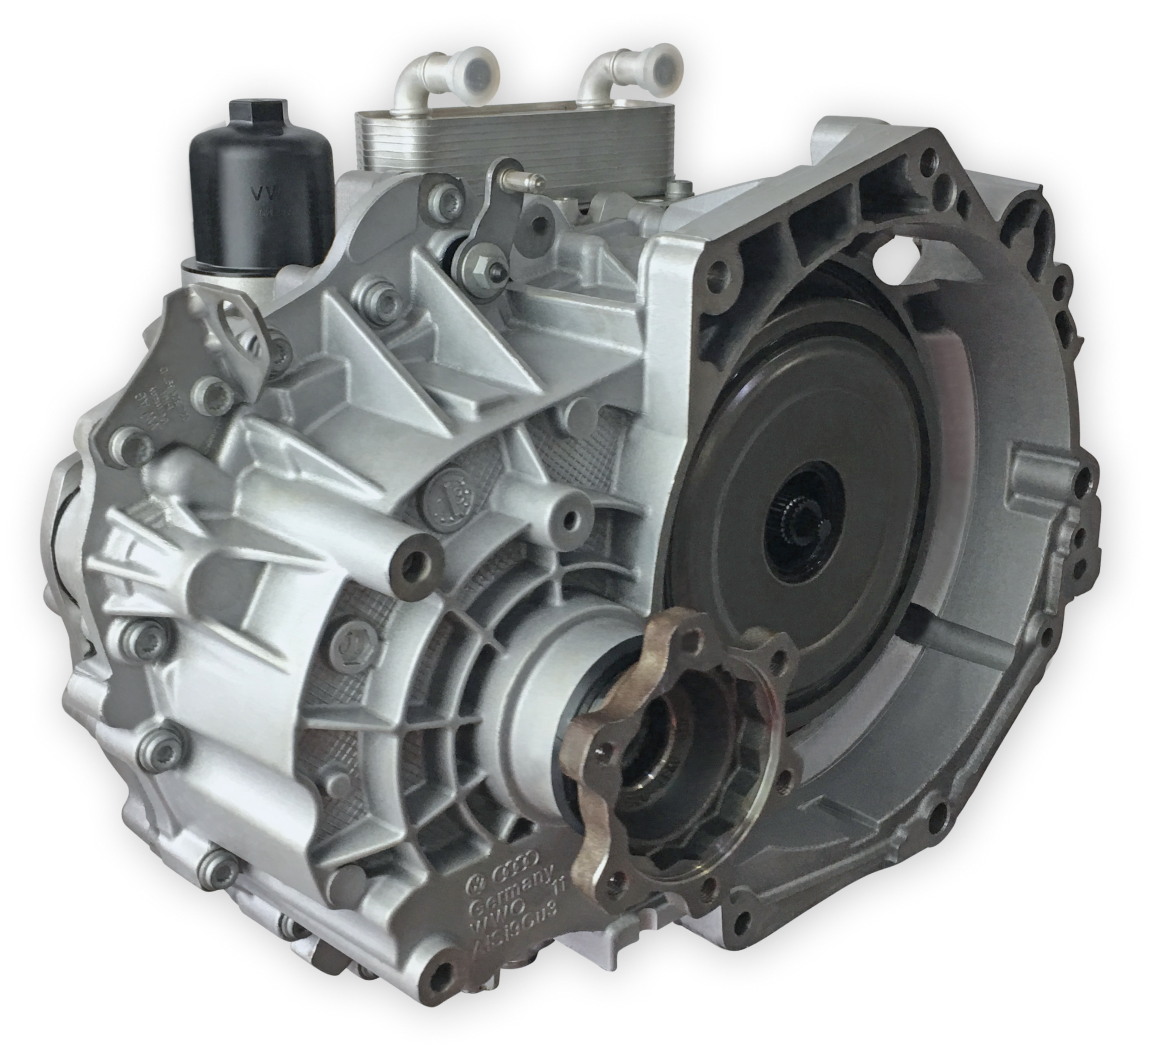 6 SPEED DSG AUTOMATIC GEARBOXES - new MILTA Technology